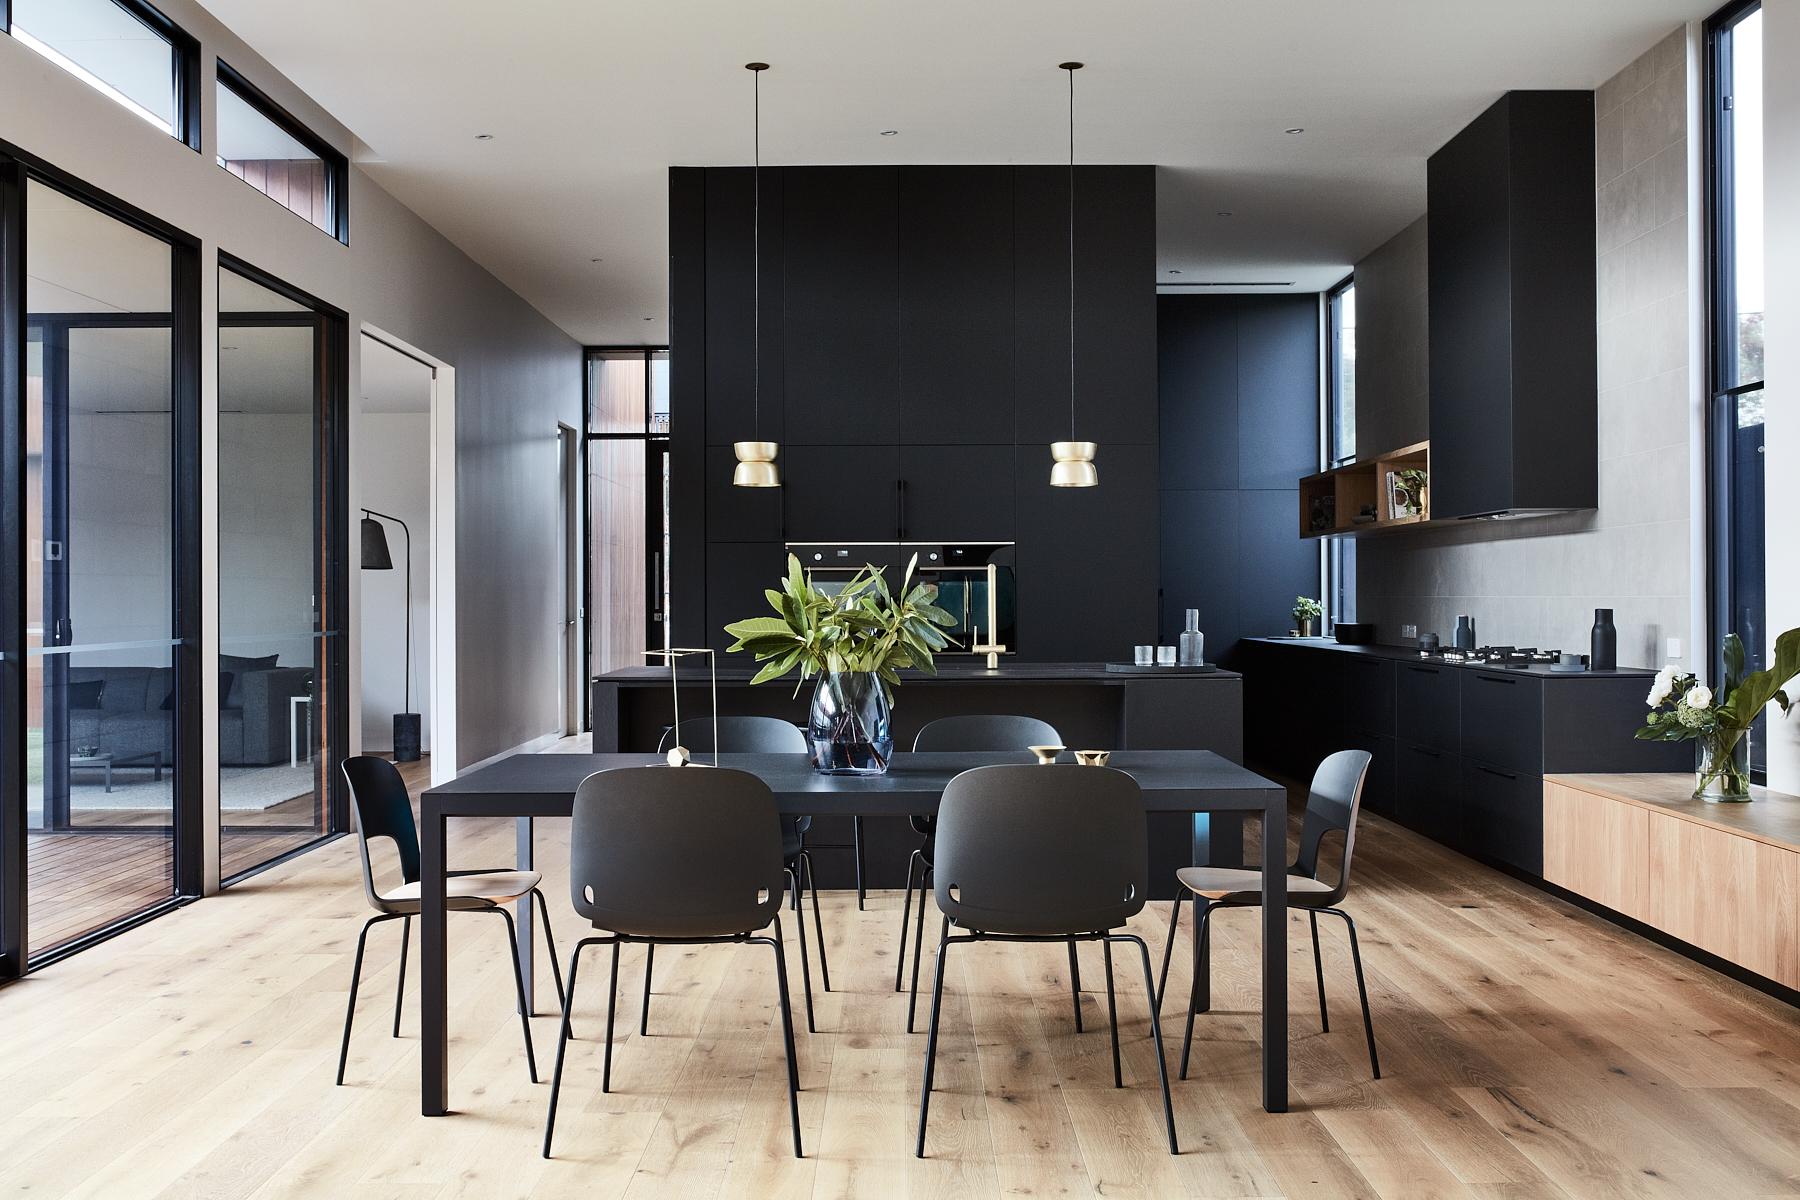 Details  °Sofflo Dining Table + Intro Dining Chairs  @piancadesign